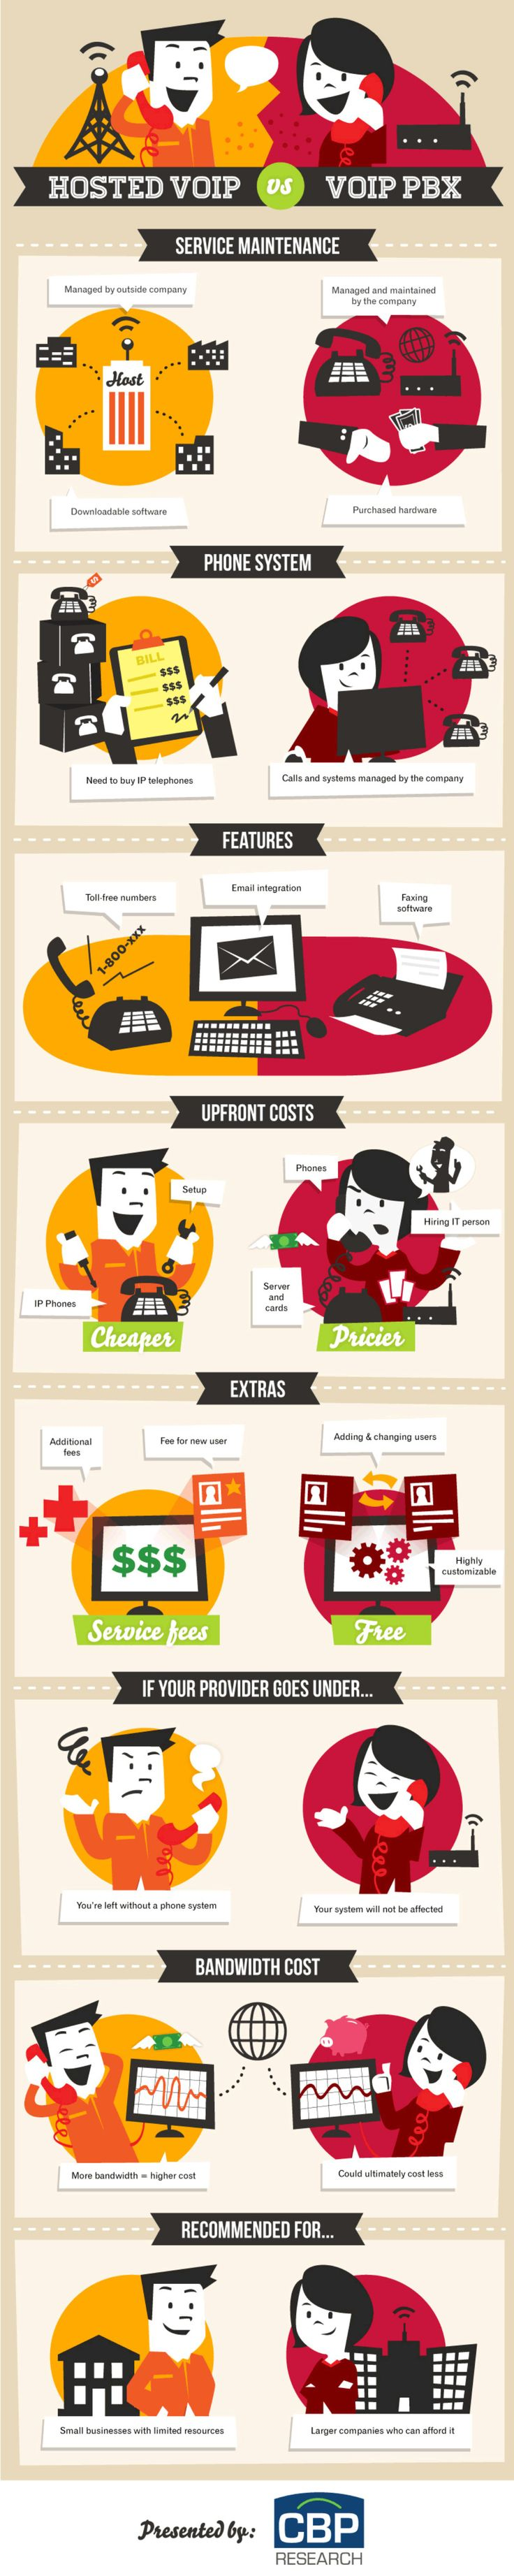 8 best phone images on pinterest phone business and cloud based heres a great infographic made by cbp research showing who benefits from hosted voip service versus a voip pbx solution fandeluxe